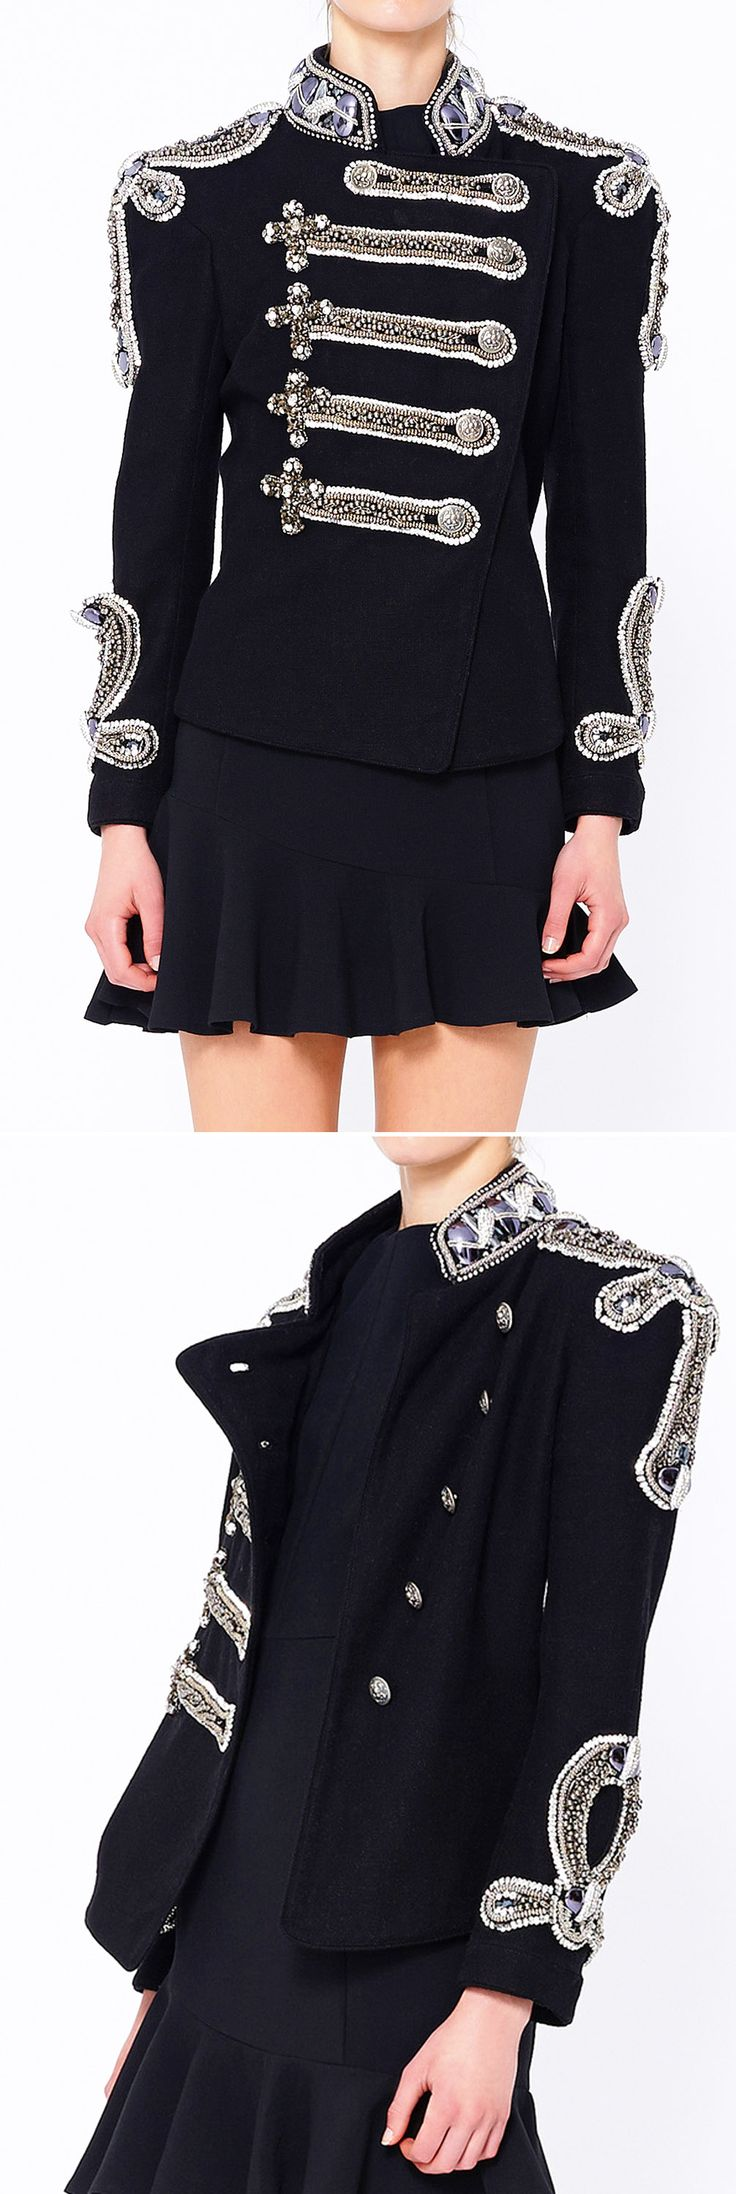 The coat is perfect, though it would not be very practical to wear such a short skirt.